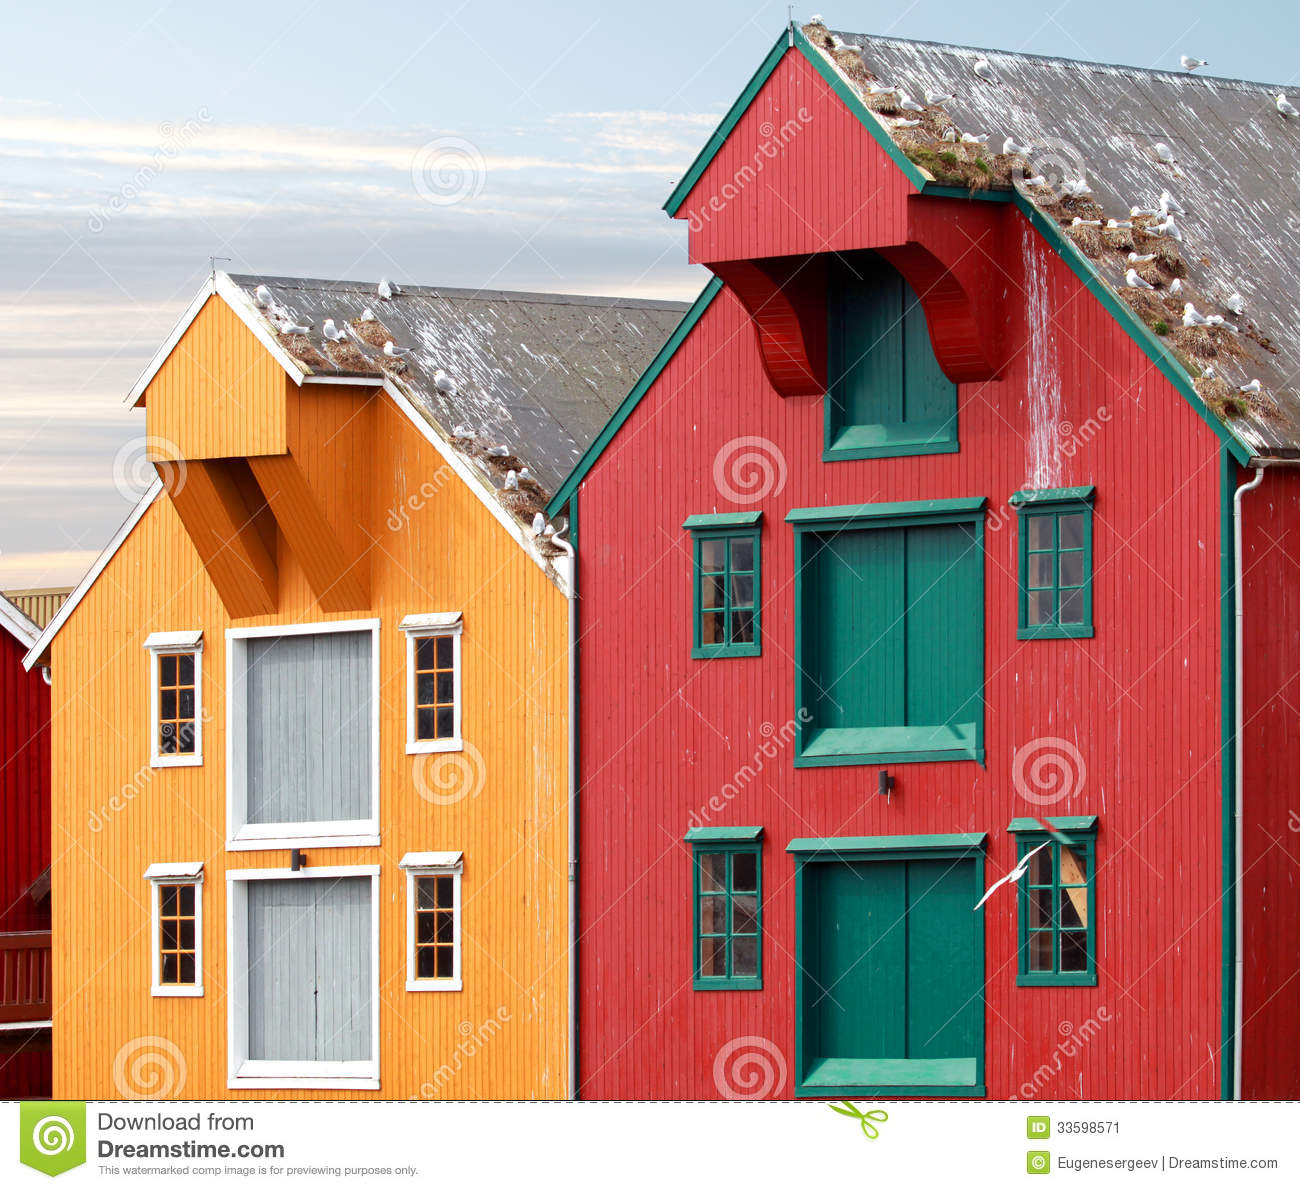 Red and yellow coastal wooden houses in norway stock image for Norway wooden houses